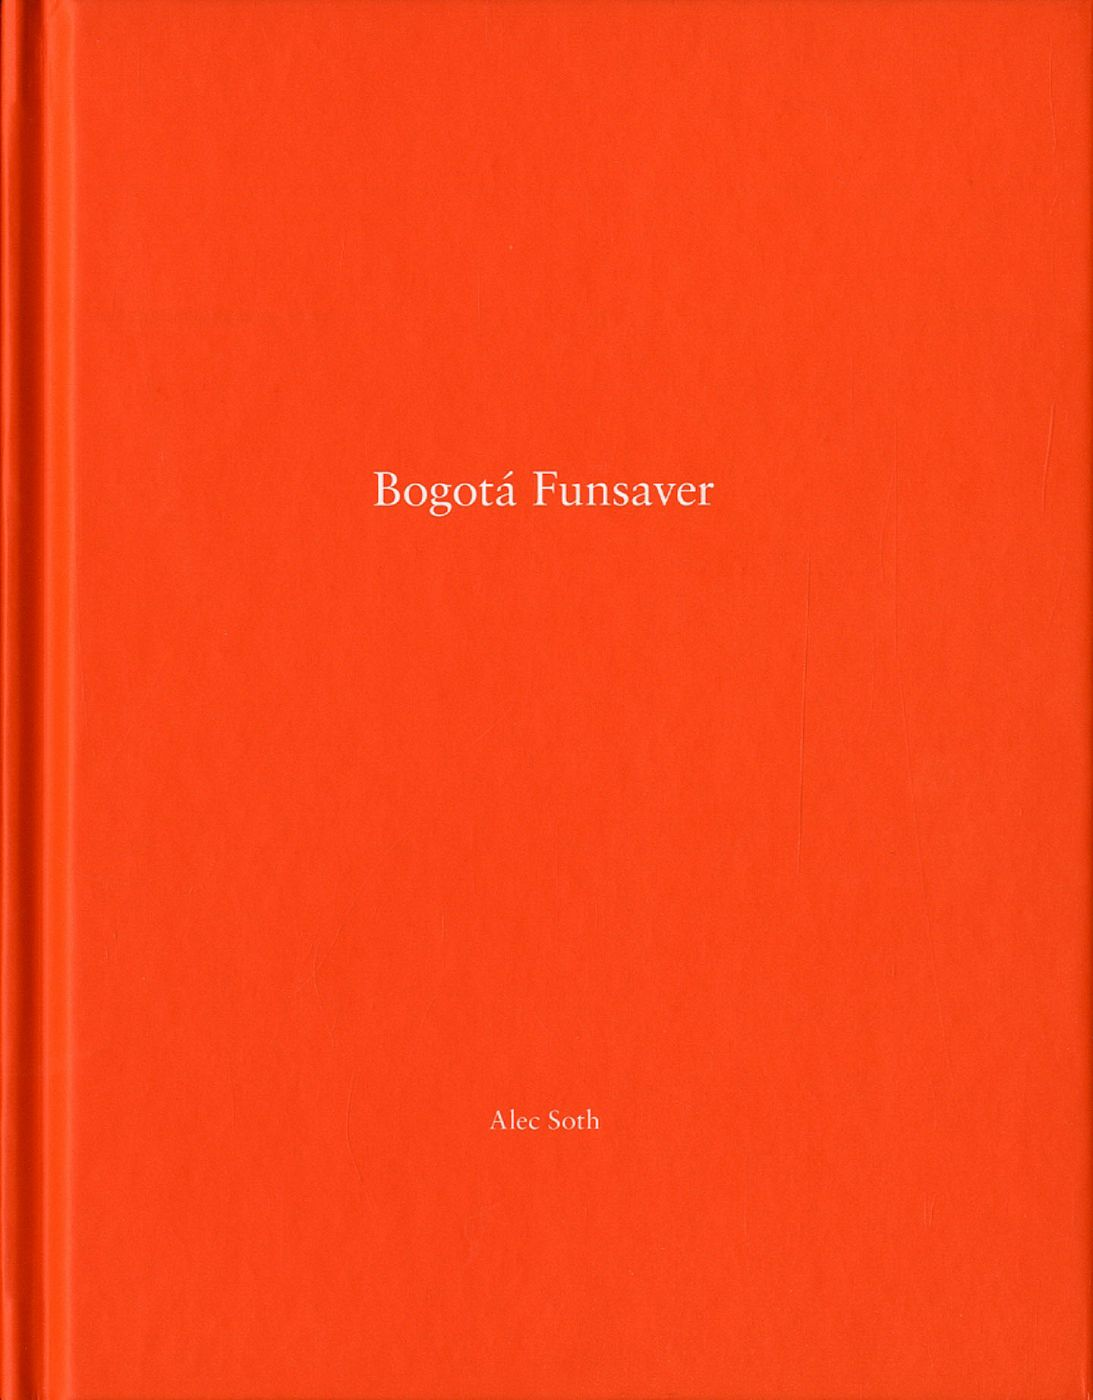 Alec Soth: Bogotá Funsaver (One Picture Book #88), Limited Edition (with Loose Print)